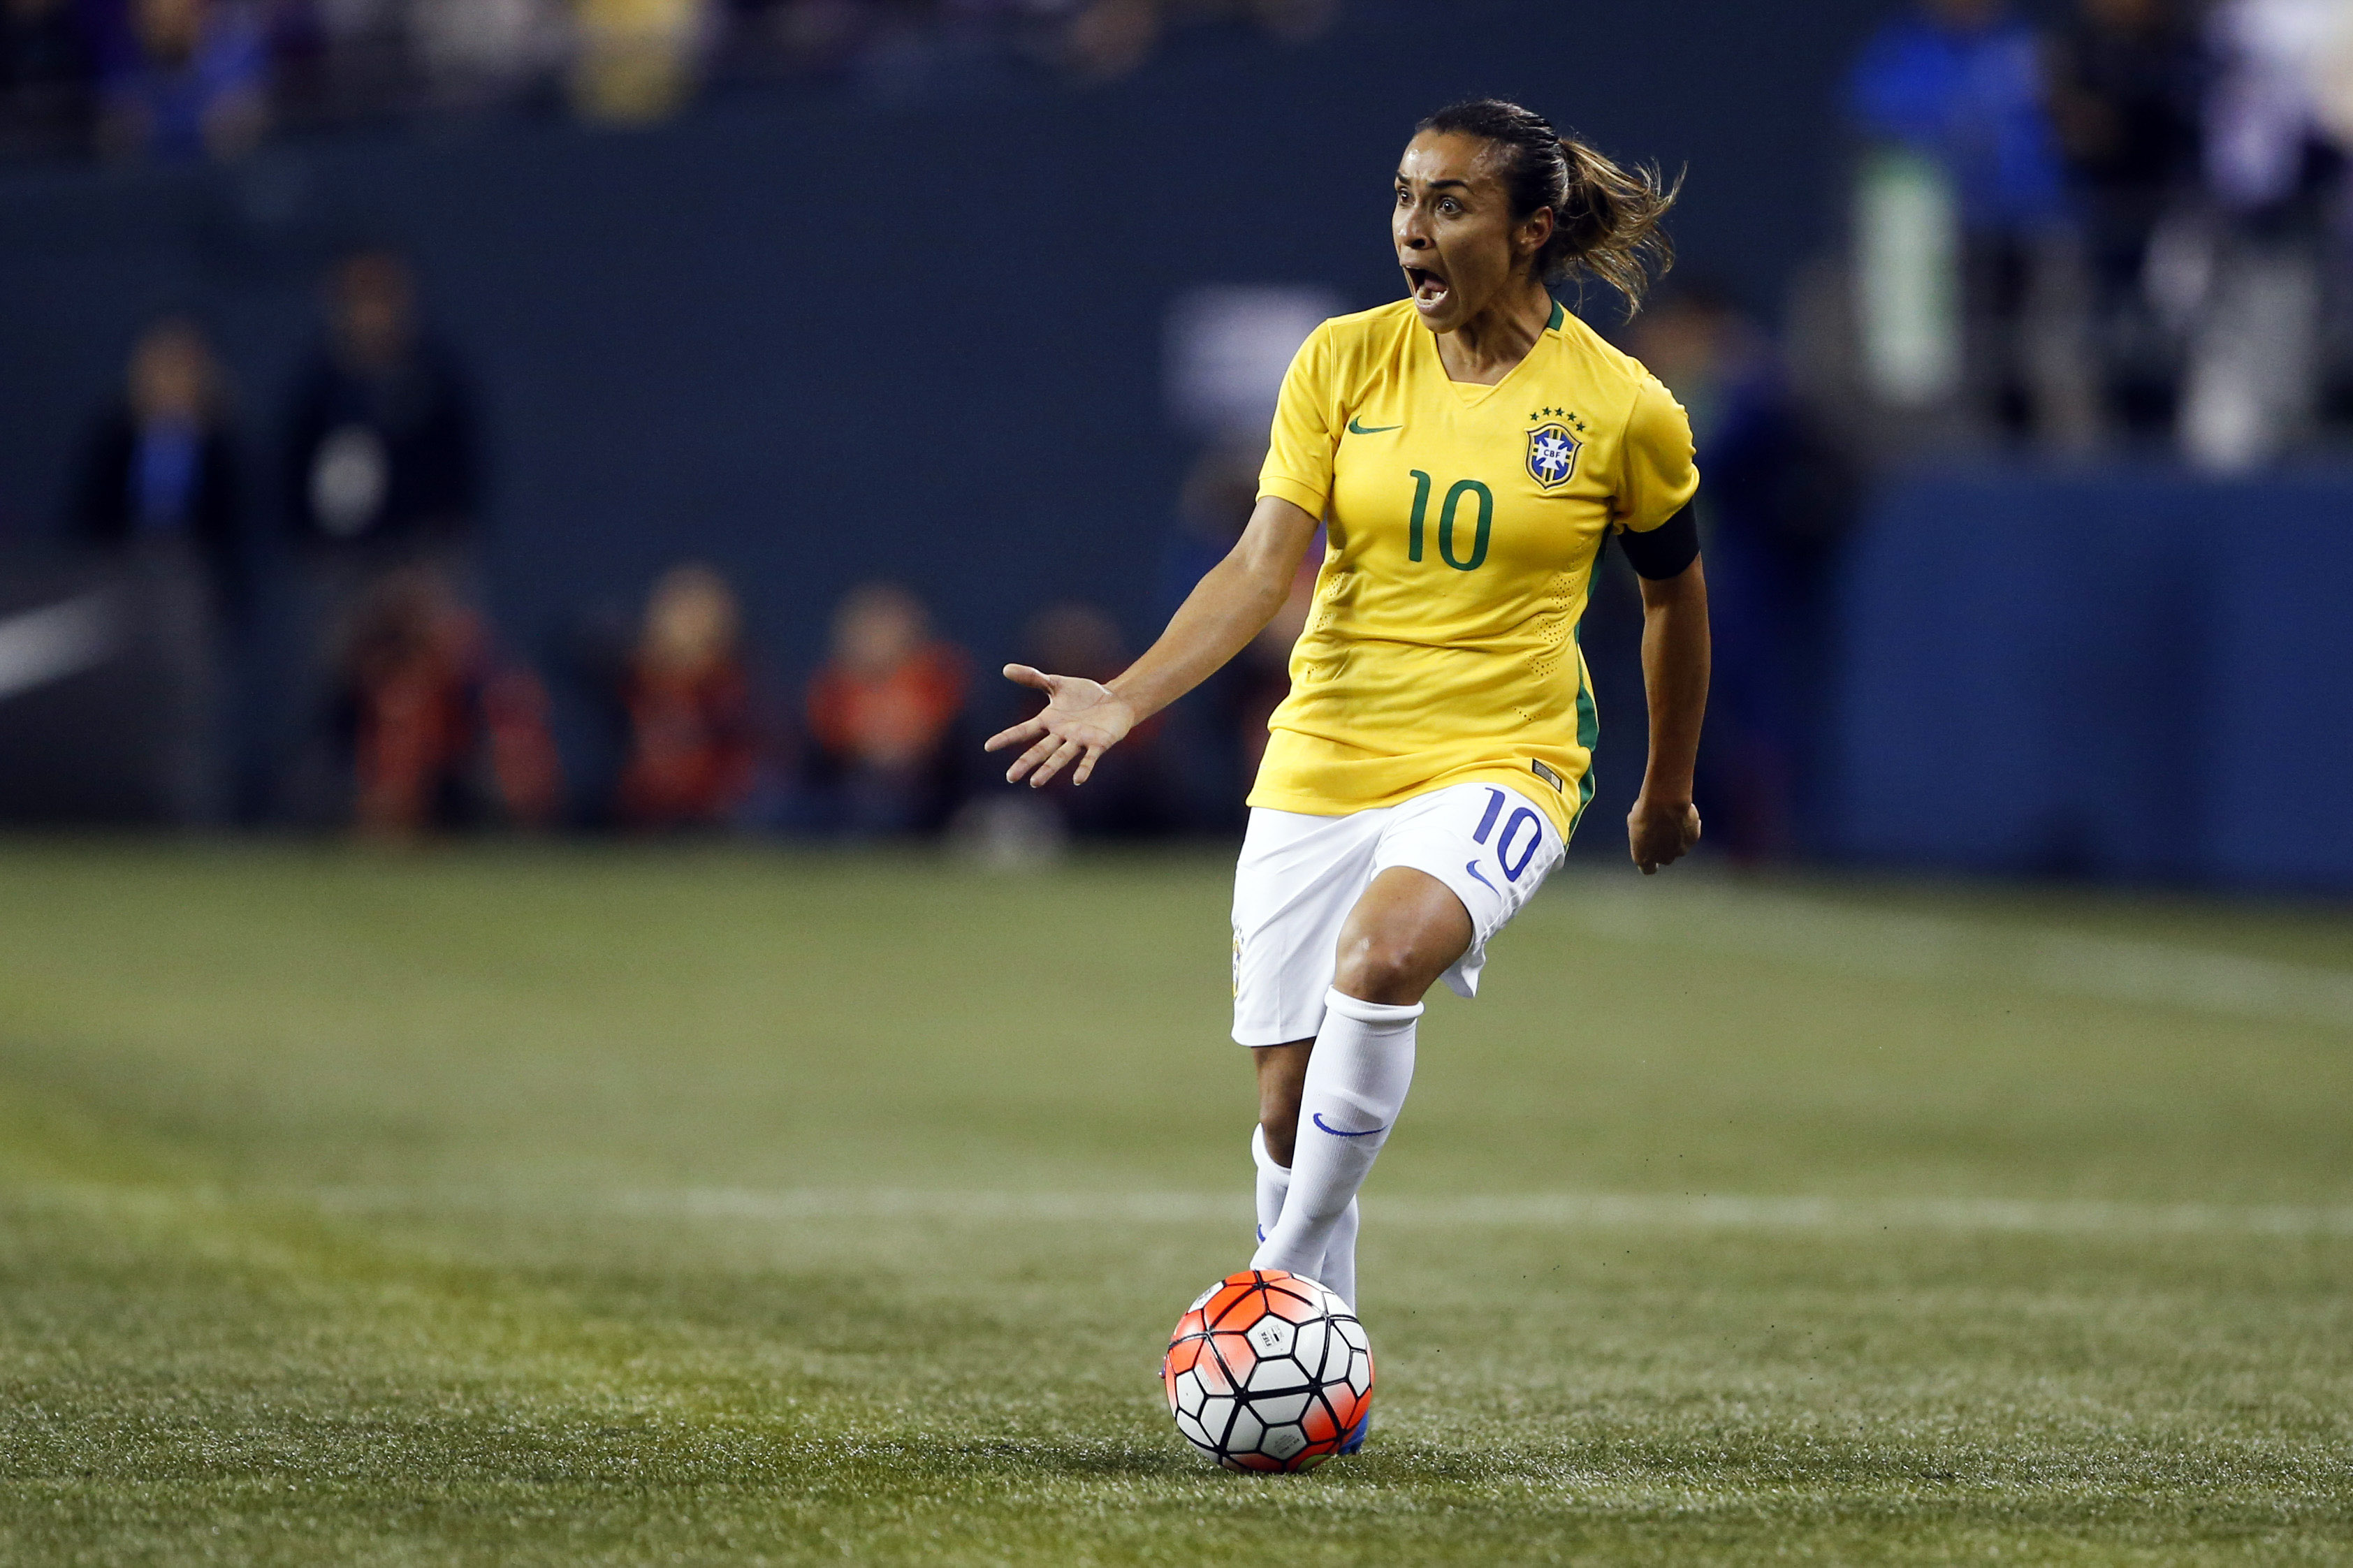 Marta was rescued by her team in the shootout, is it her time to carry them to a Gold now?